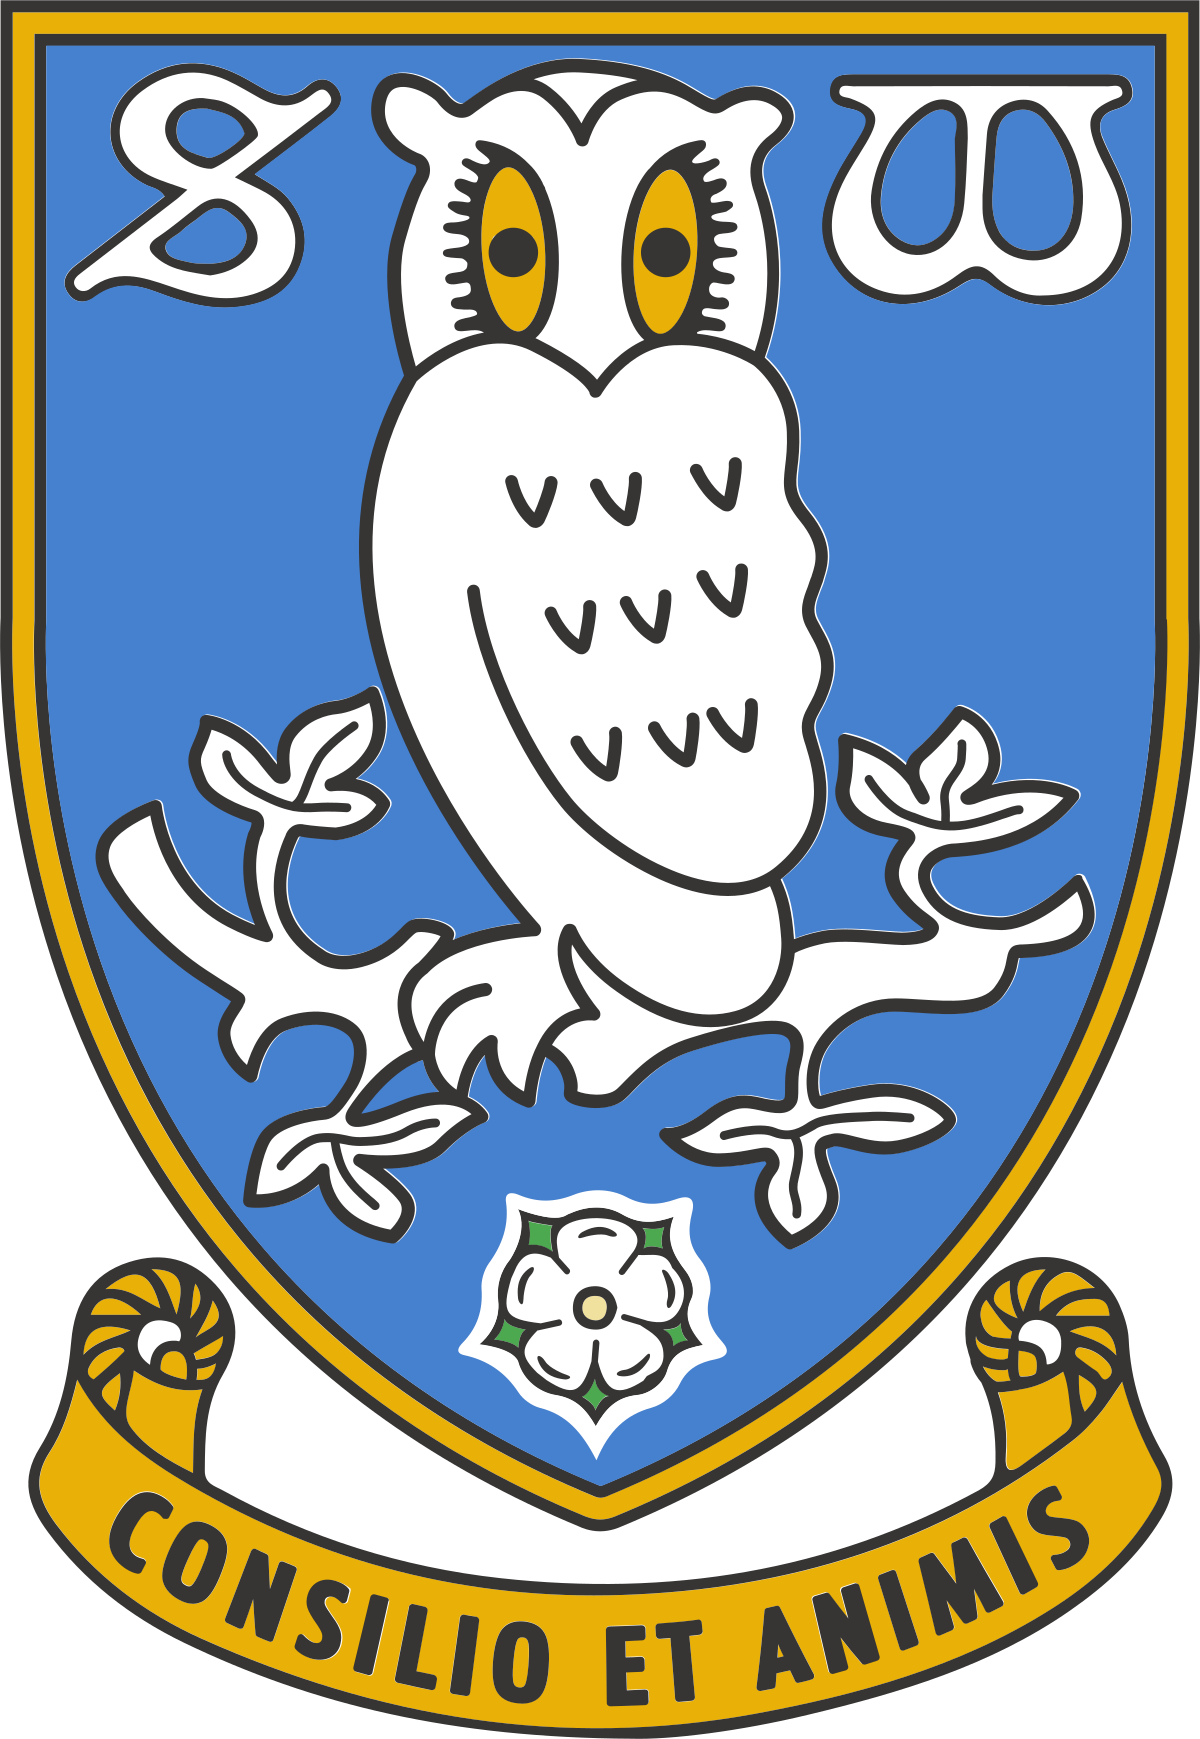 Sheffield Wednesday crest